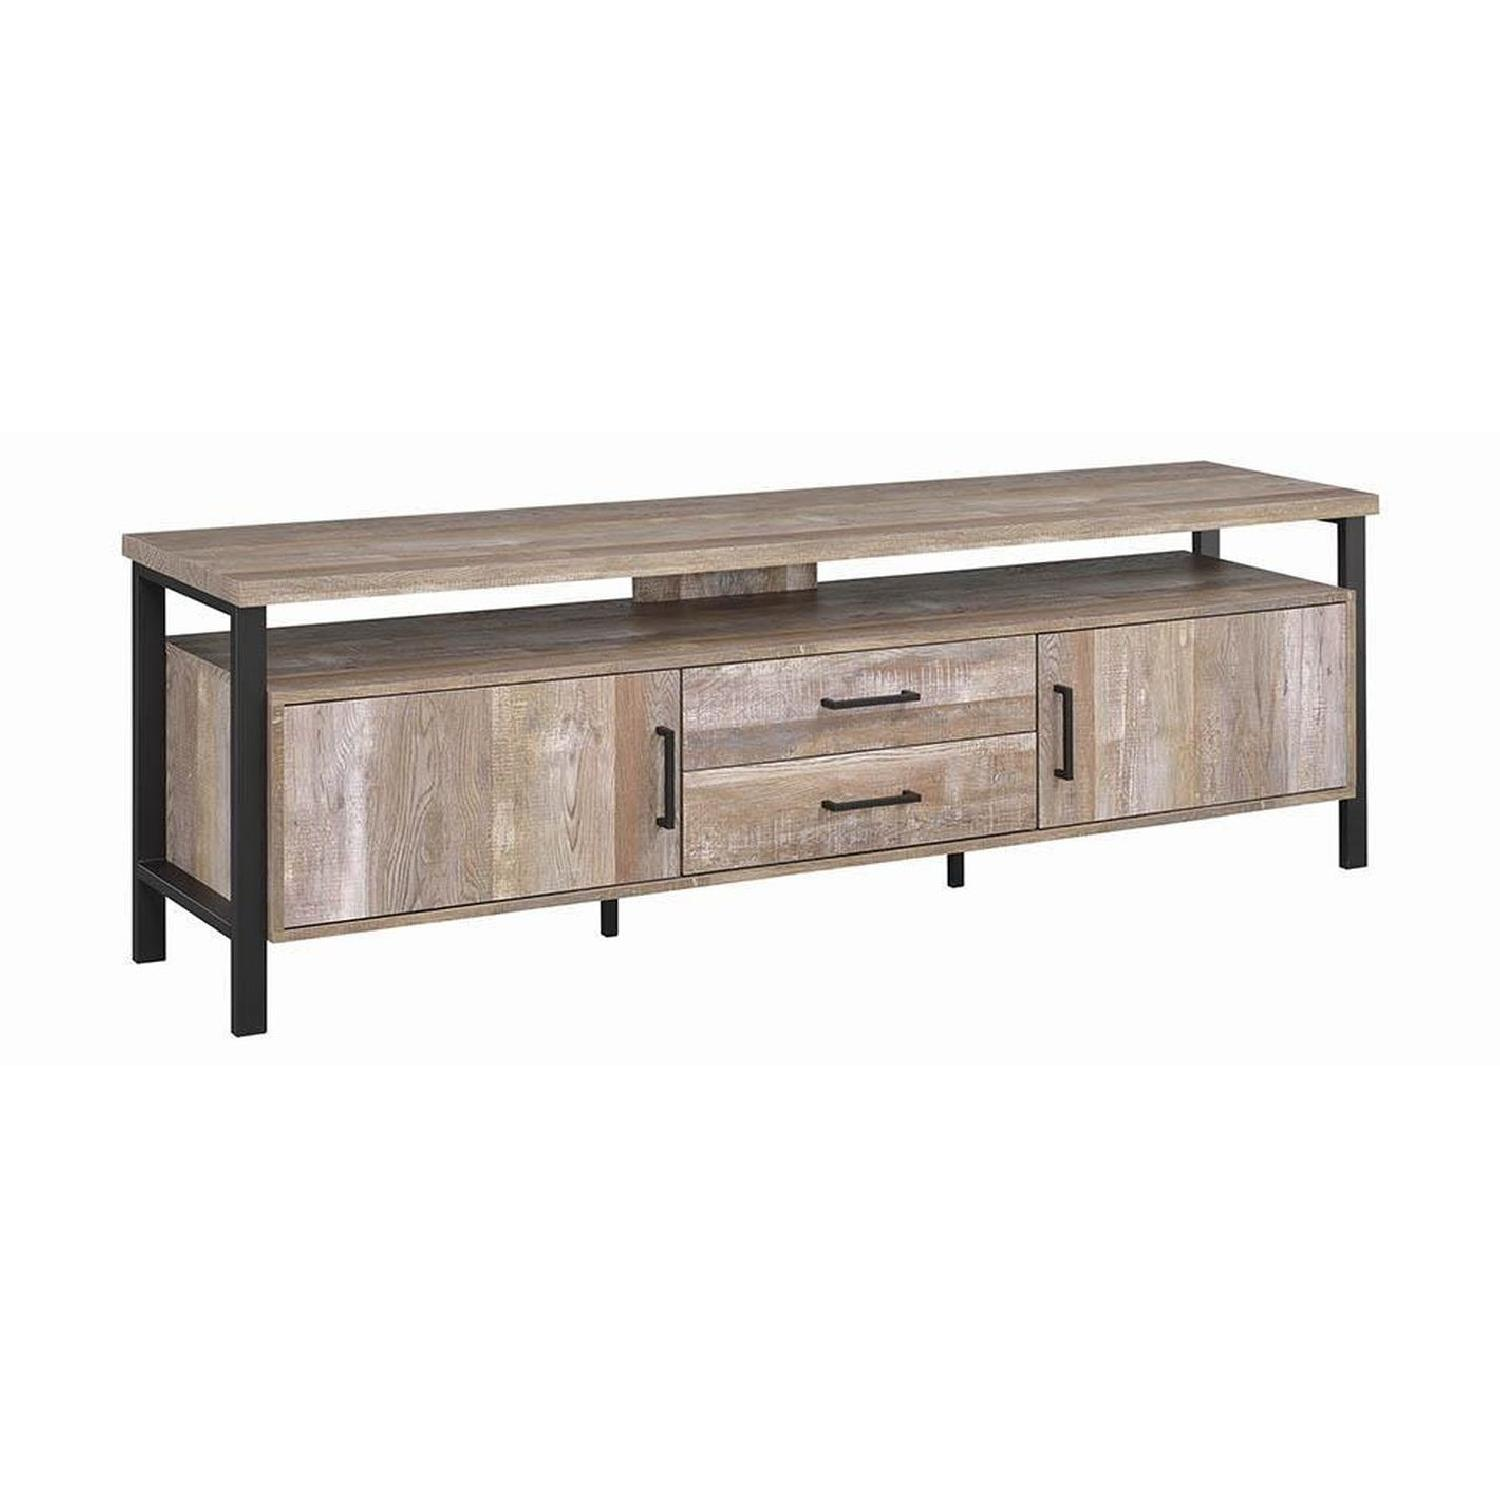 TV Stand In Rustic Oak Finish w/ 2 Cabinets & 2 Drawers - image-16